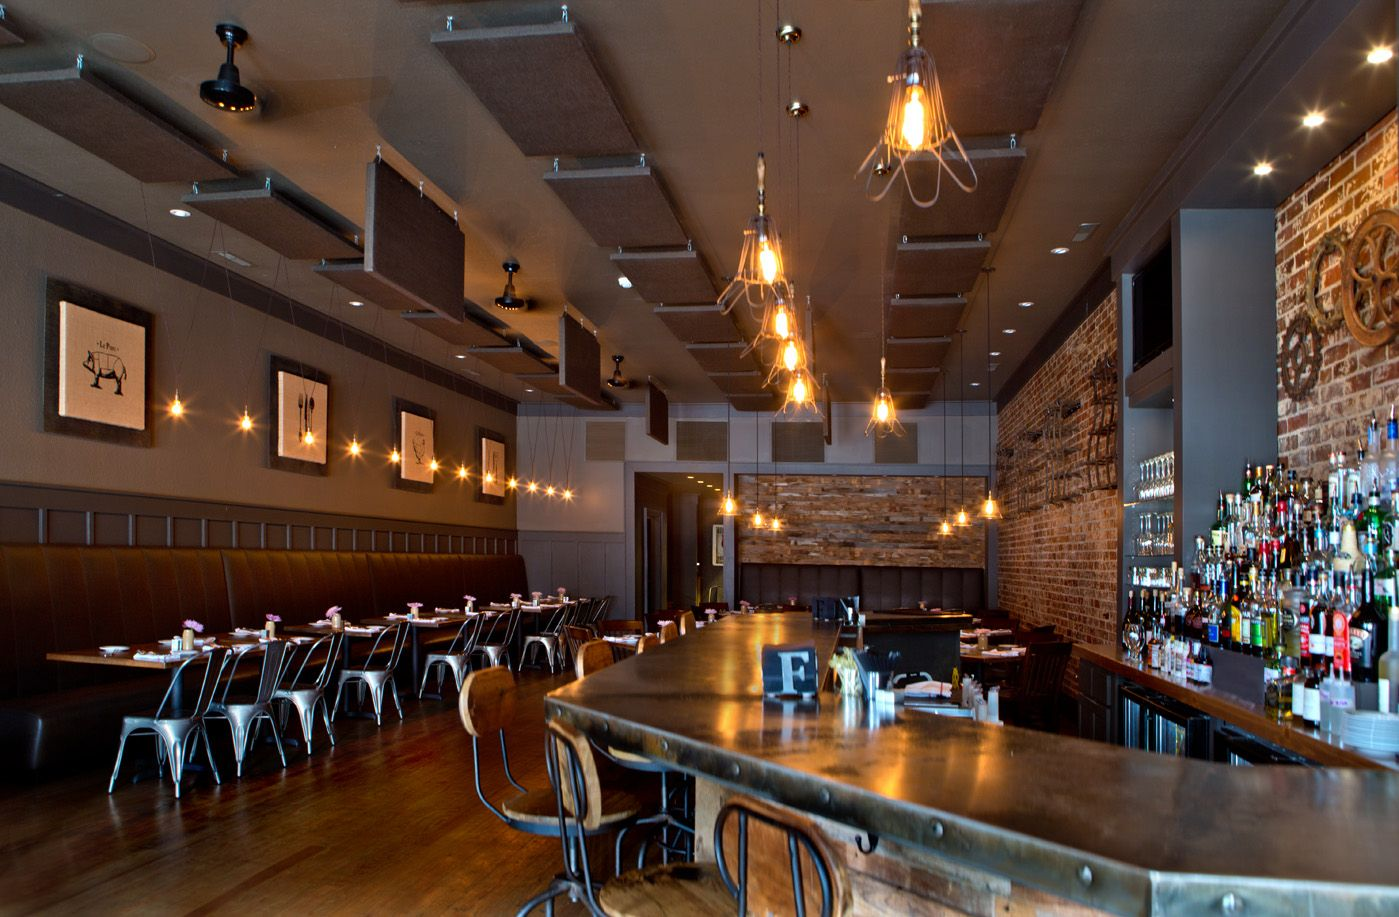 Fortify Kitchen & Bar is a farmtotable restaurant owned